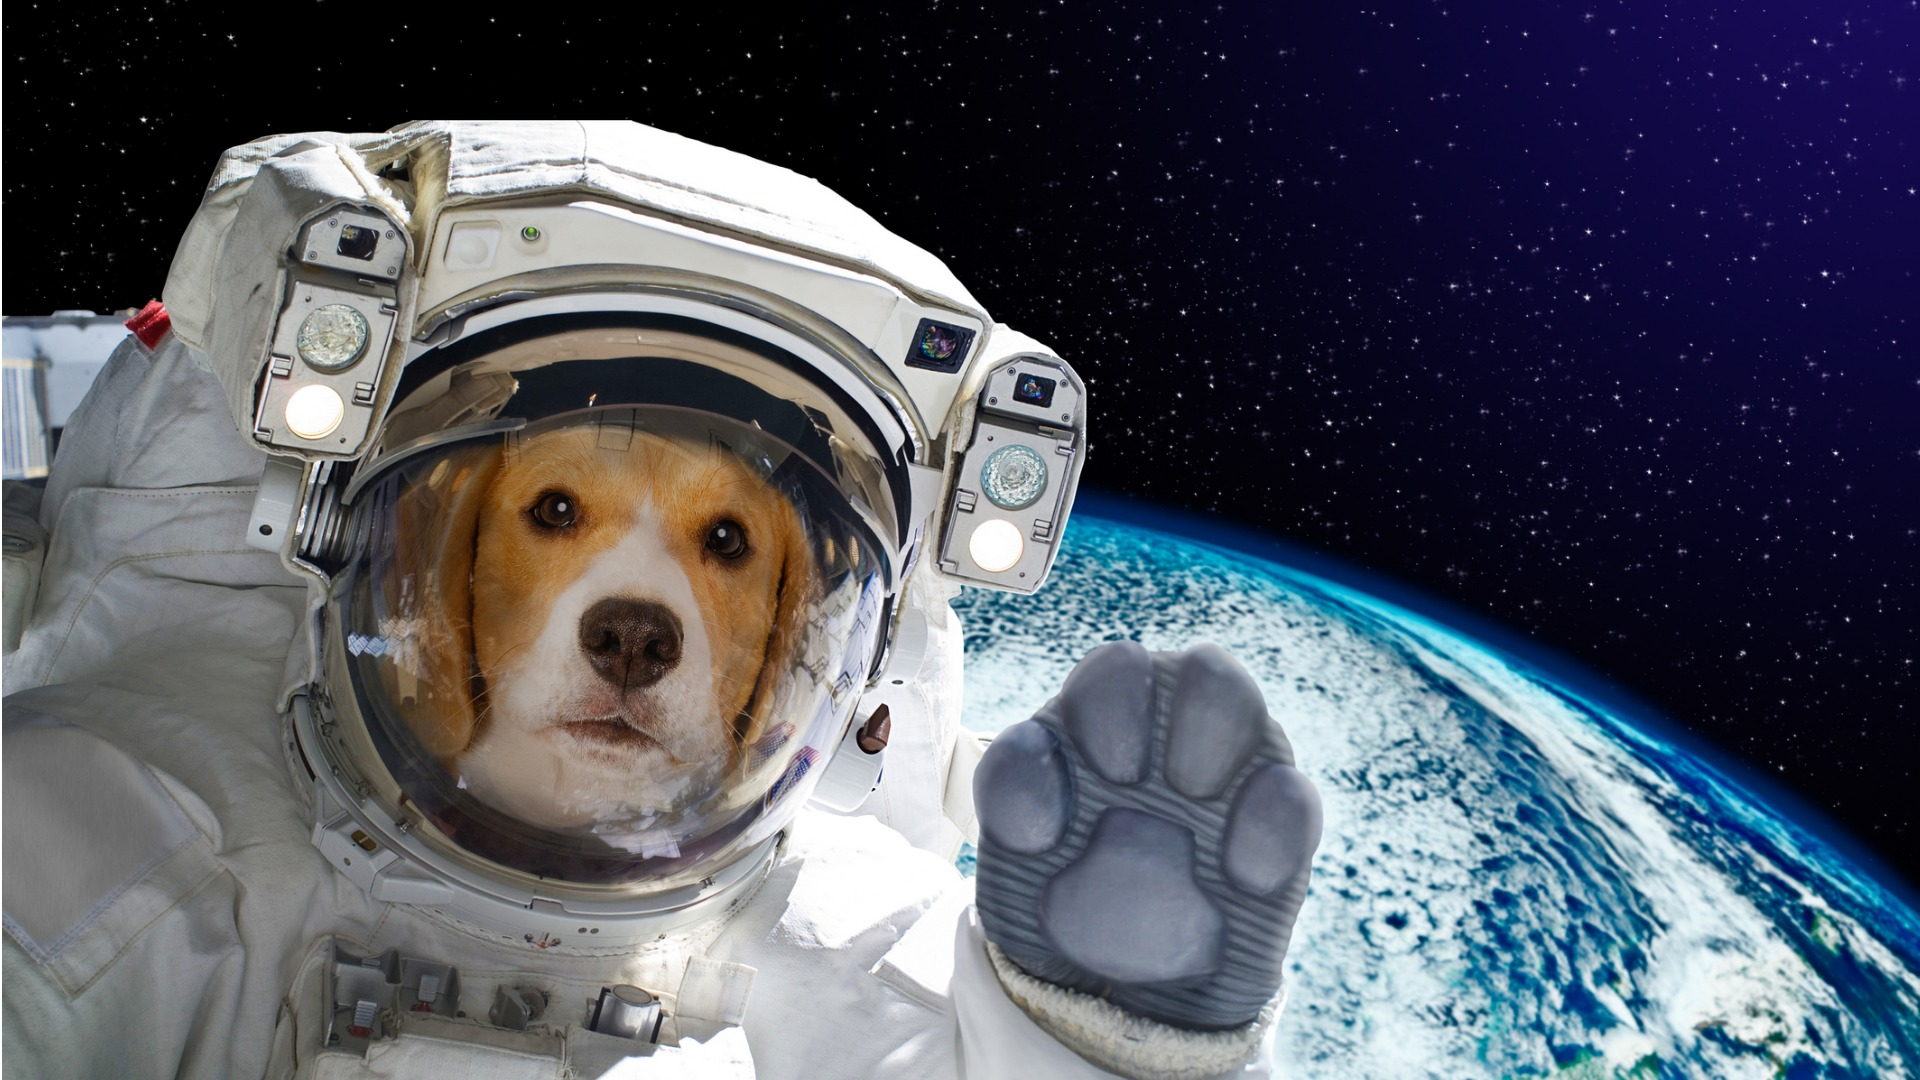 portrait-of-a-dog-astronaut-in-space-on-background-of-the-globe-of-picture-id898916798 (1)